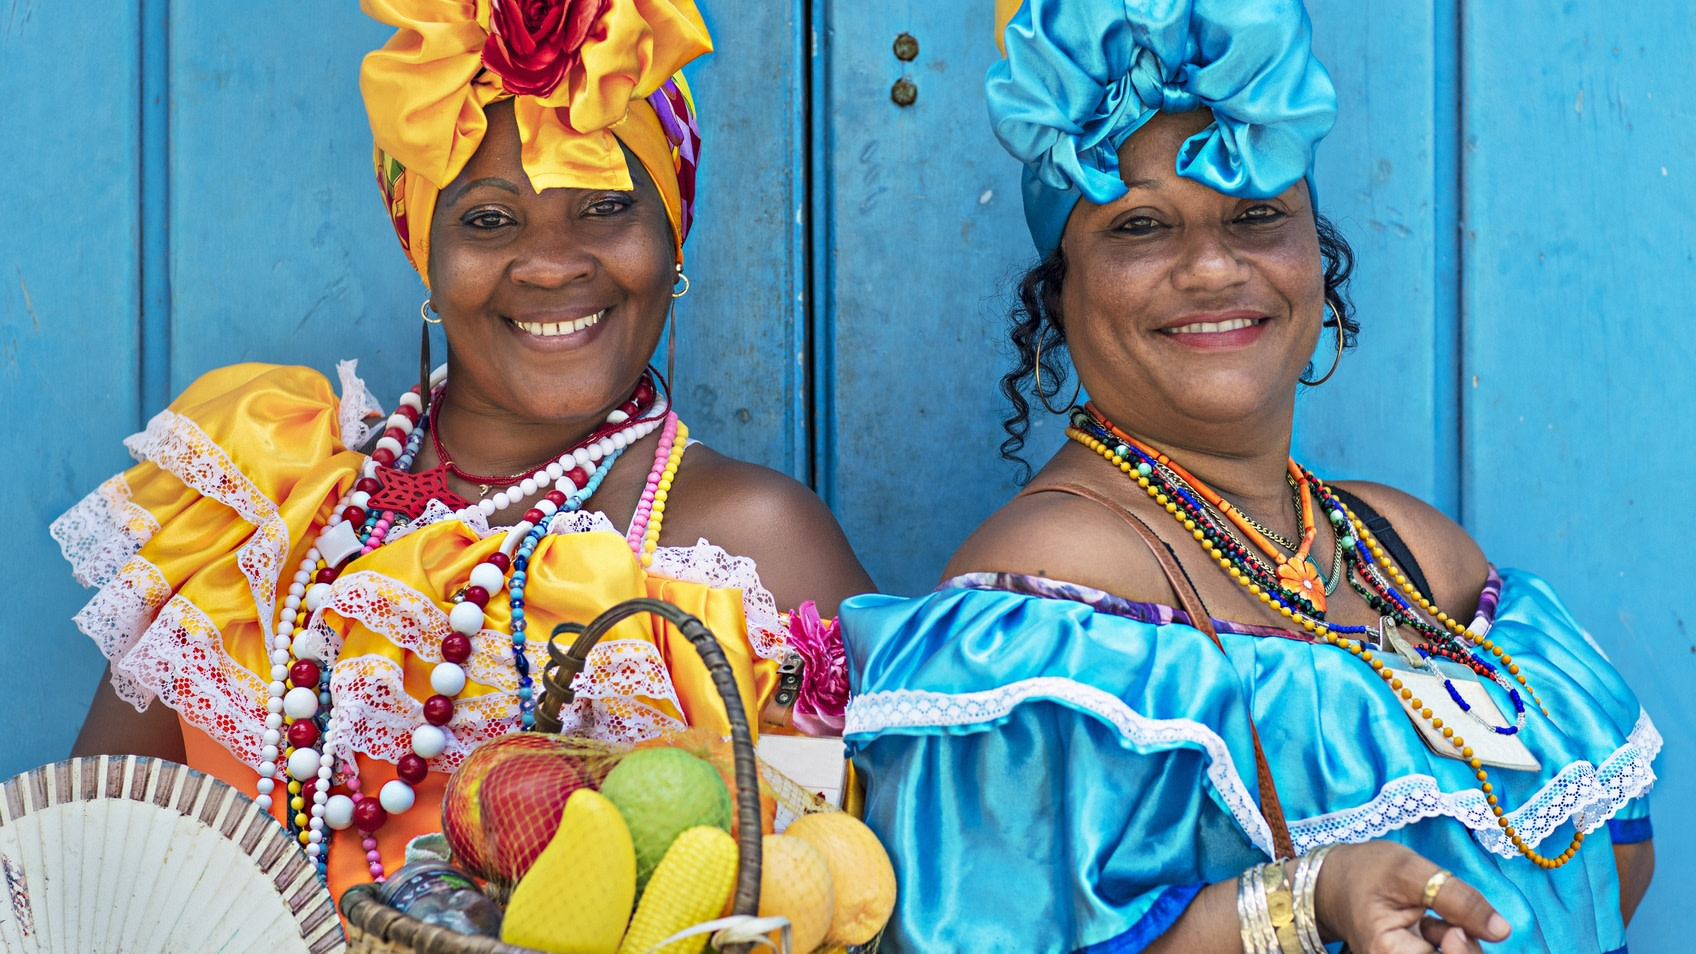 Diaspora Diets: How Food Culture In The Caribbean Helps The Environment